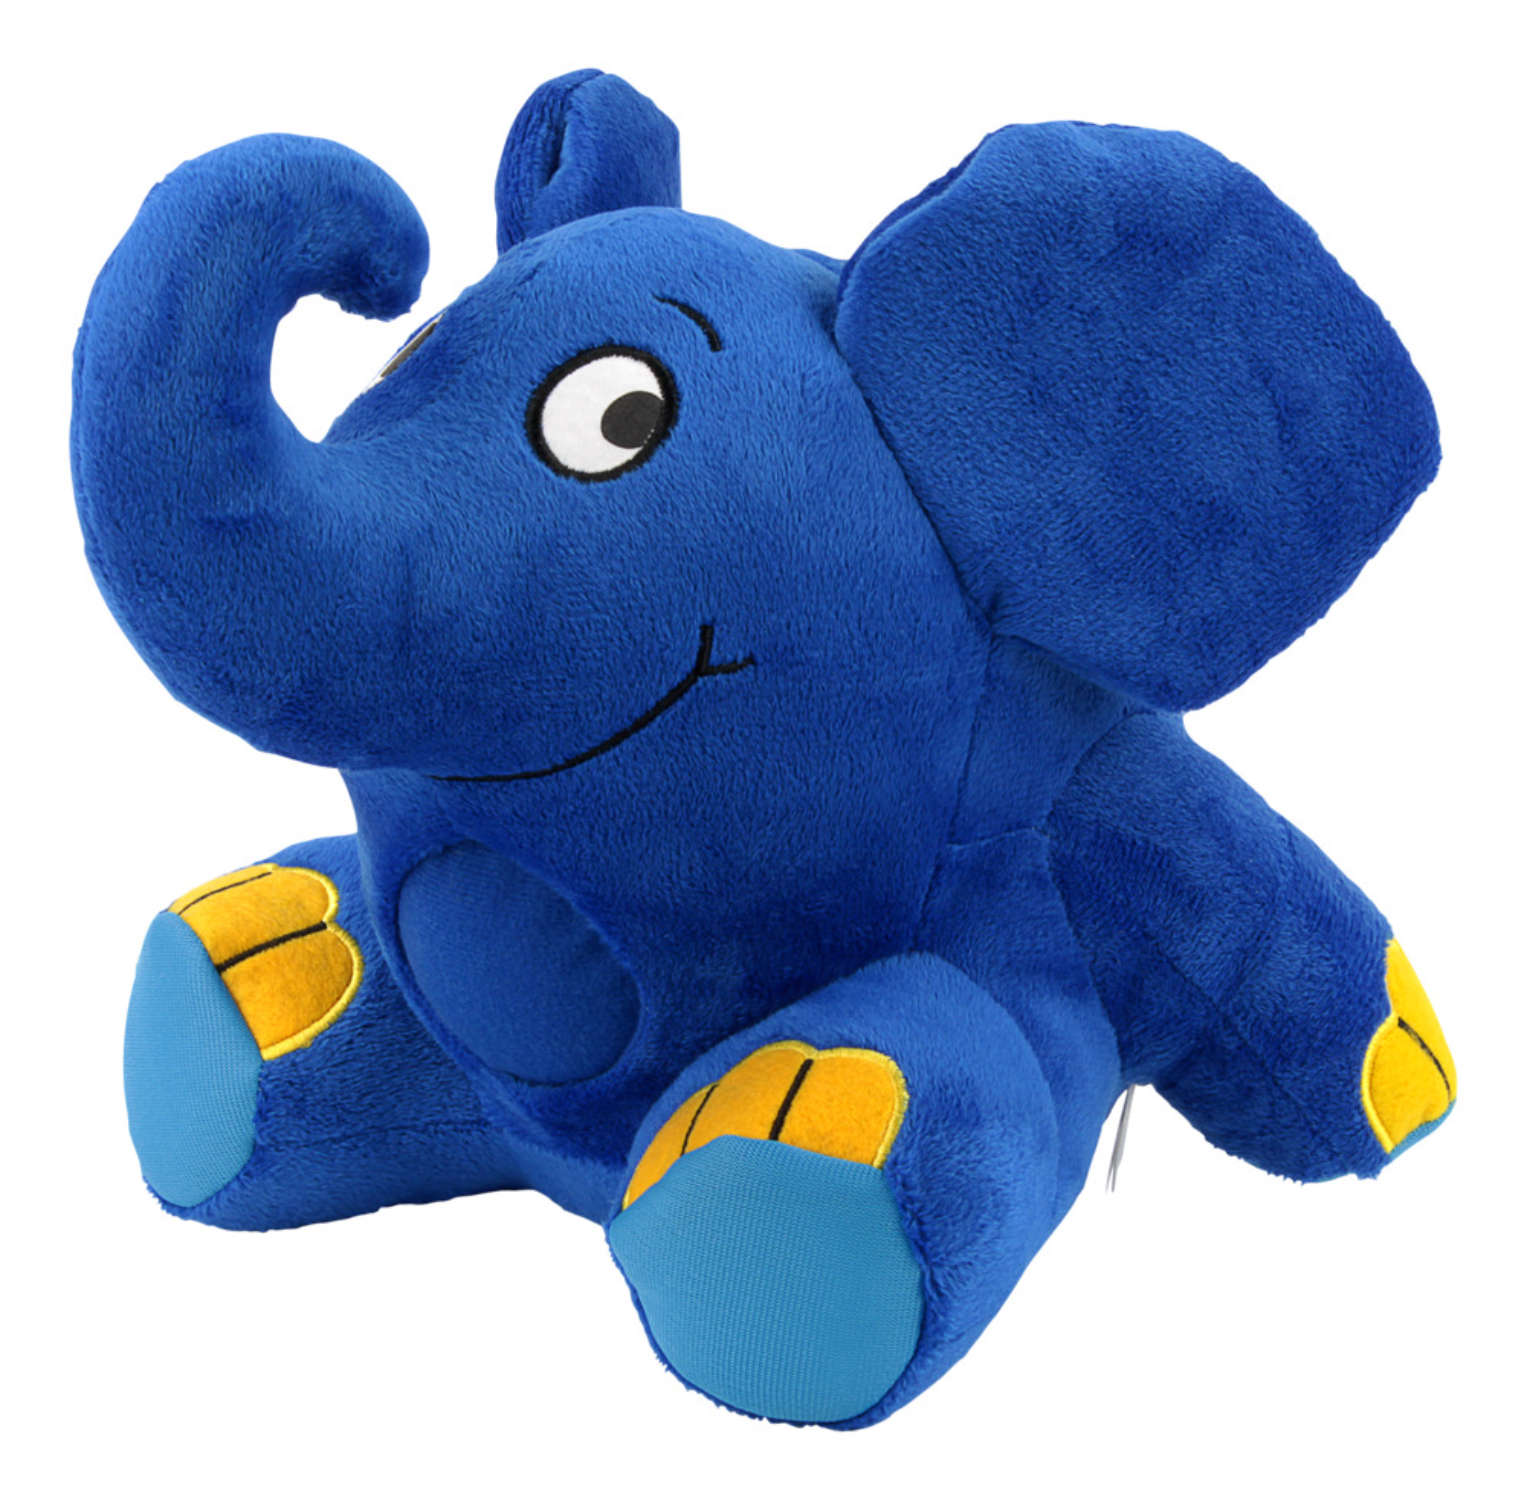 1800-0014_CP-Slumber Nightlight-Die-Maus-Elefant-bu1